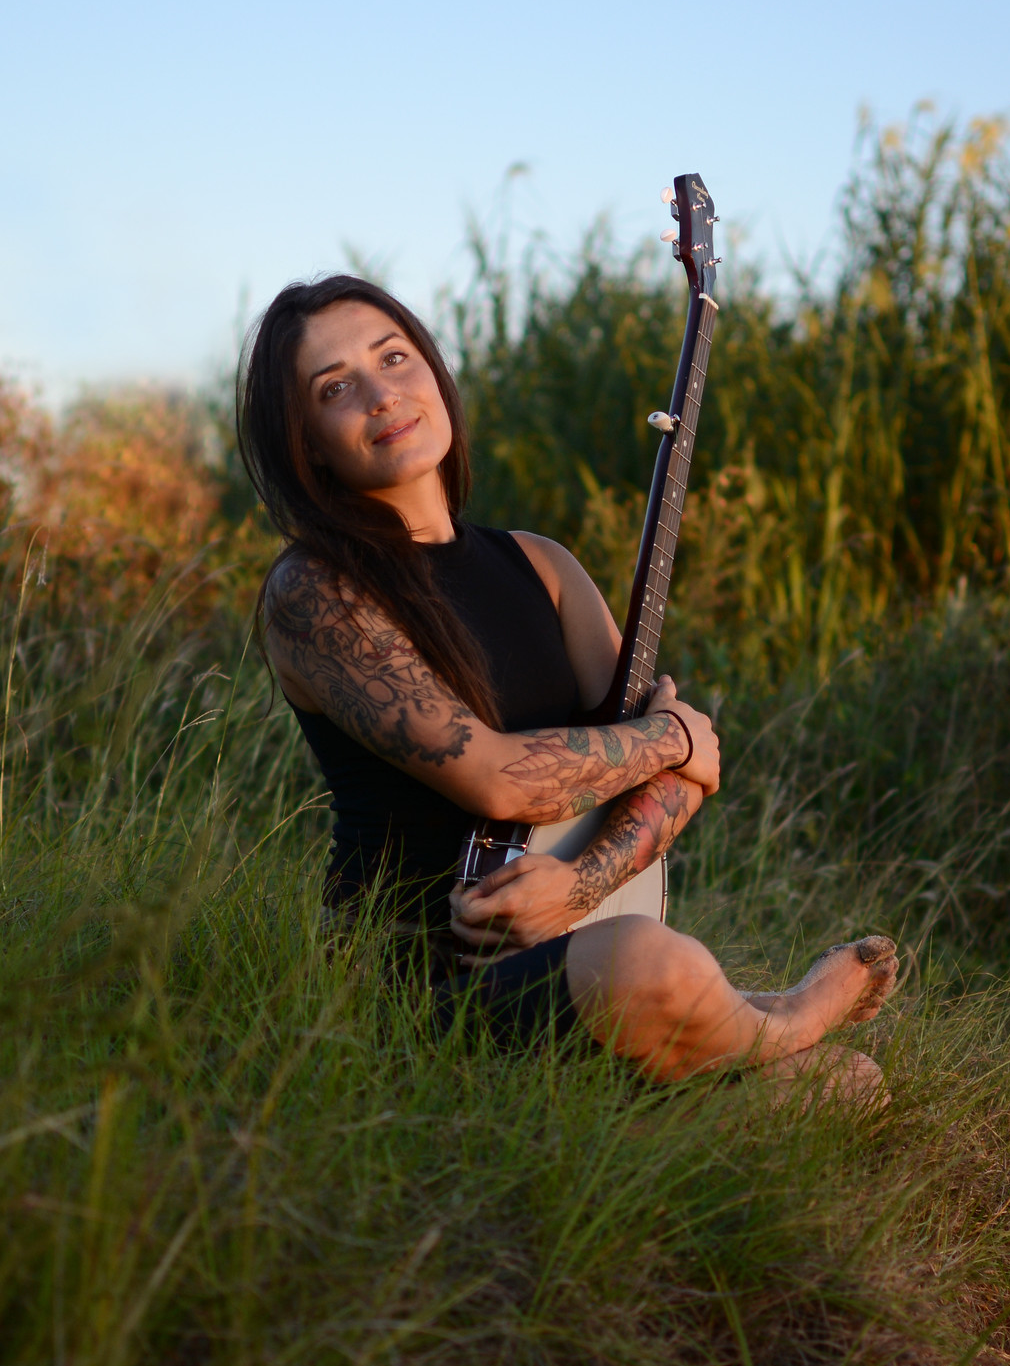 A light-skinned woman with dark hair sits cross-legged in a sunlit field, smiling at the camera. She wears a sleeveless black dress, showing off her colorful arm tattoos. In her lap, she holds a banjo.